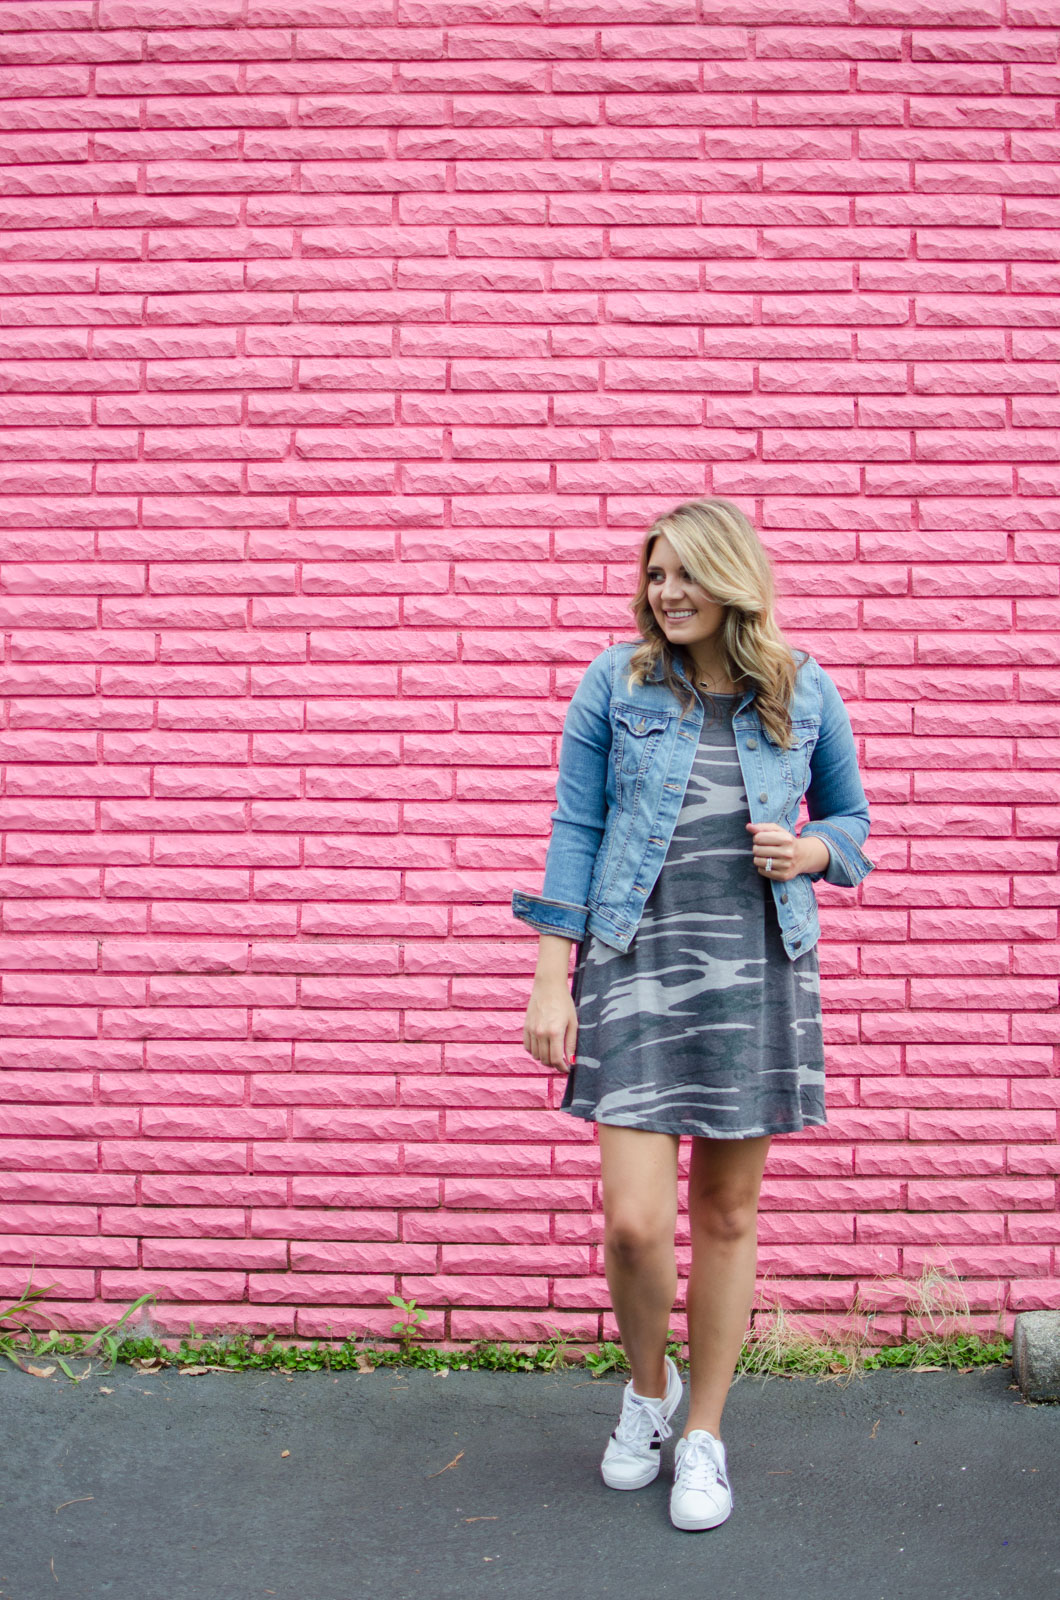 early fall outfit idea - camo tshirt dress outfit | For more cute Fall outfits, go to bylaurenm.com!